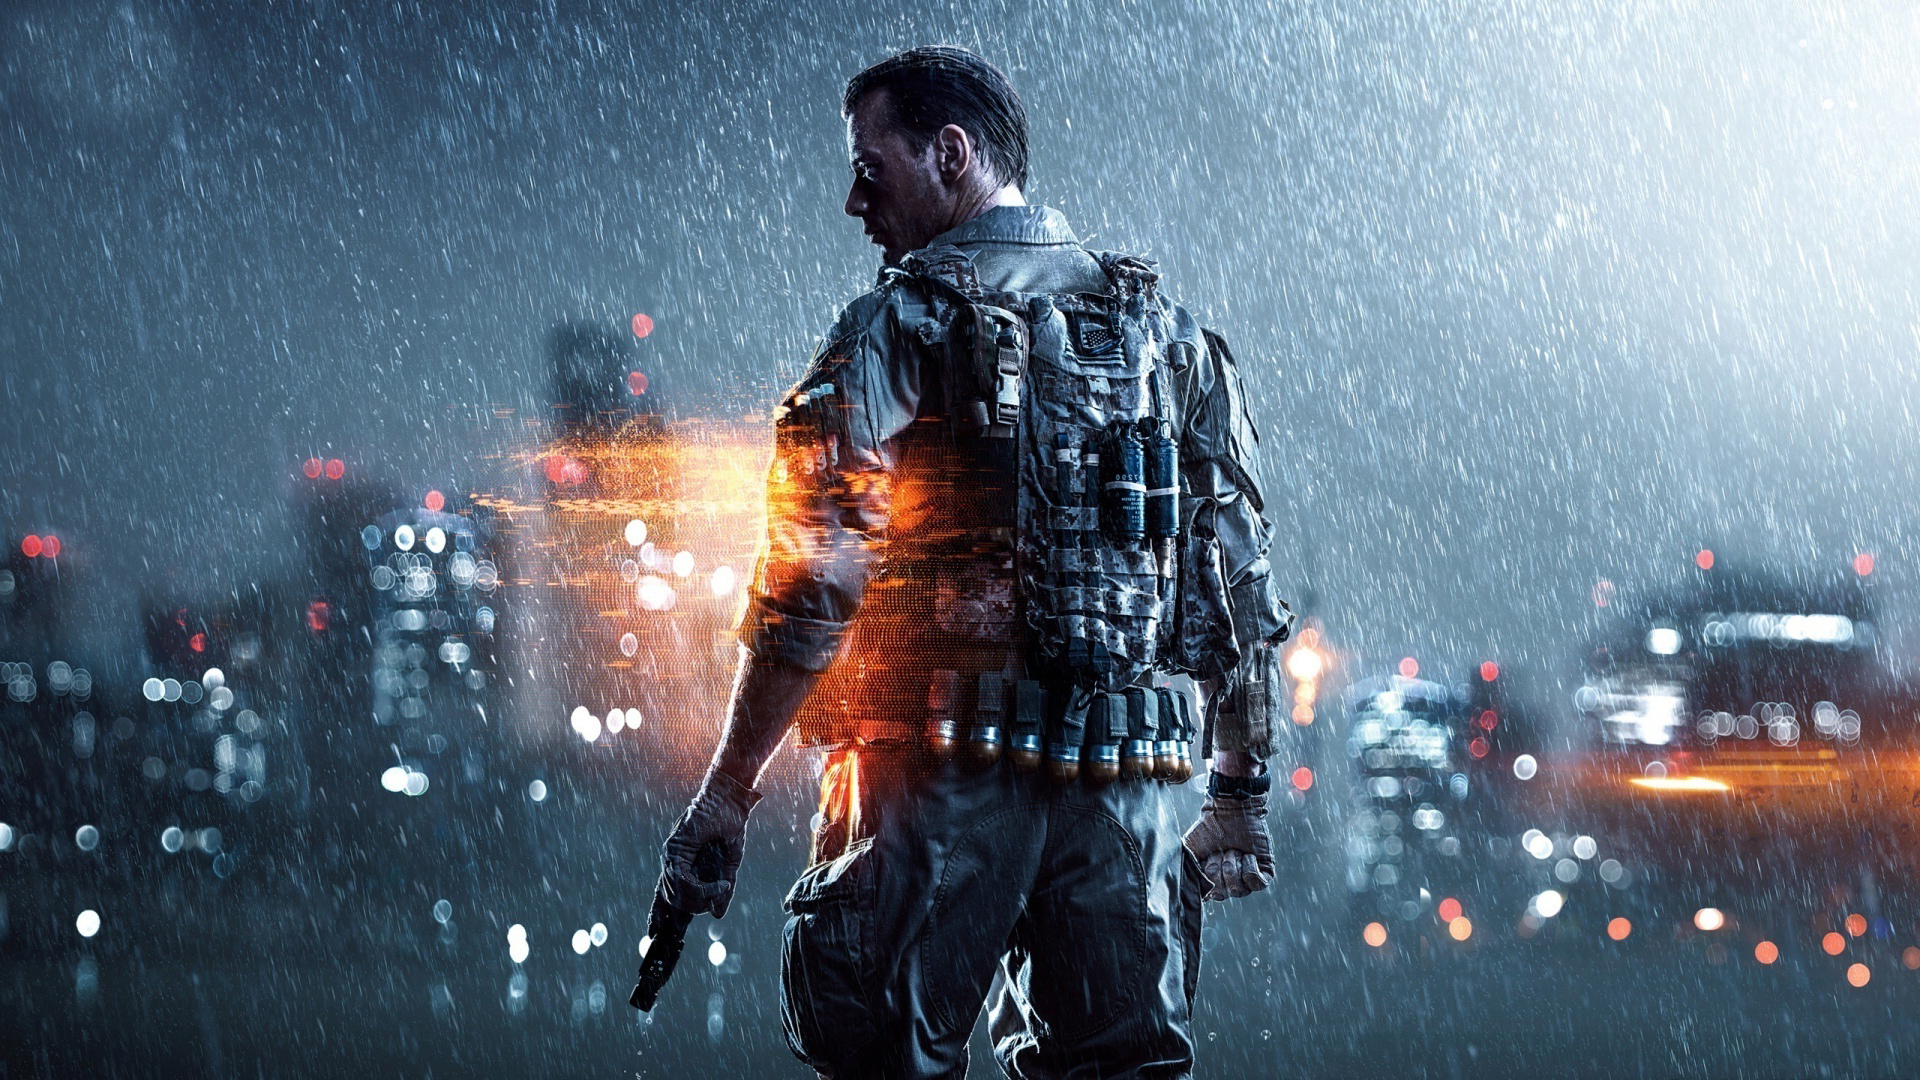 1536x2048 battlefield 4 wallpaper - photo #2